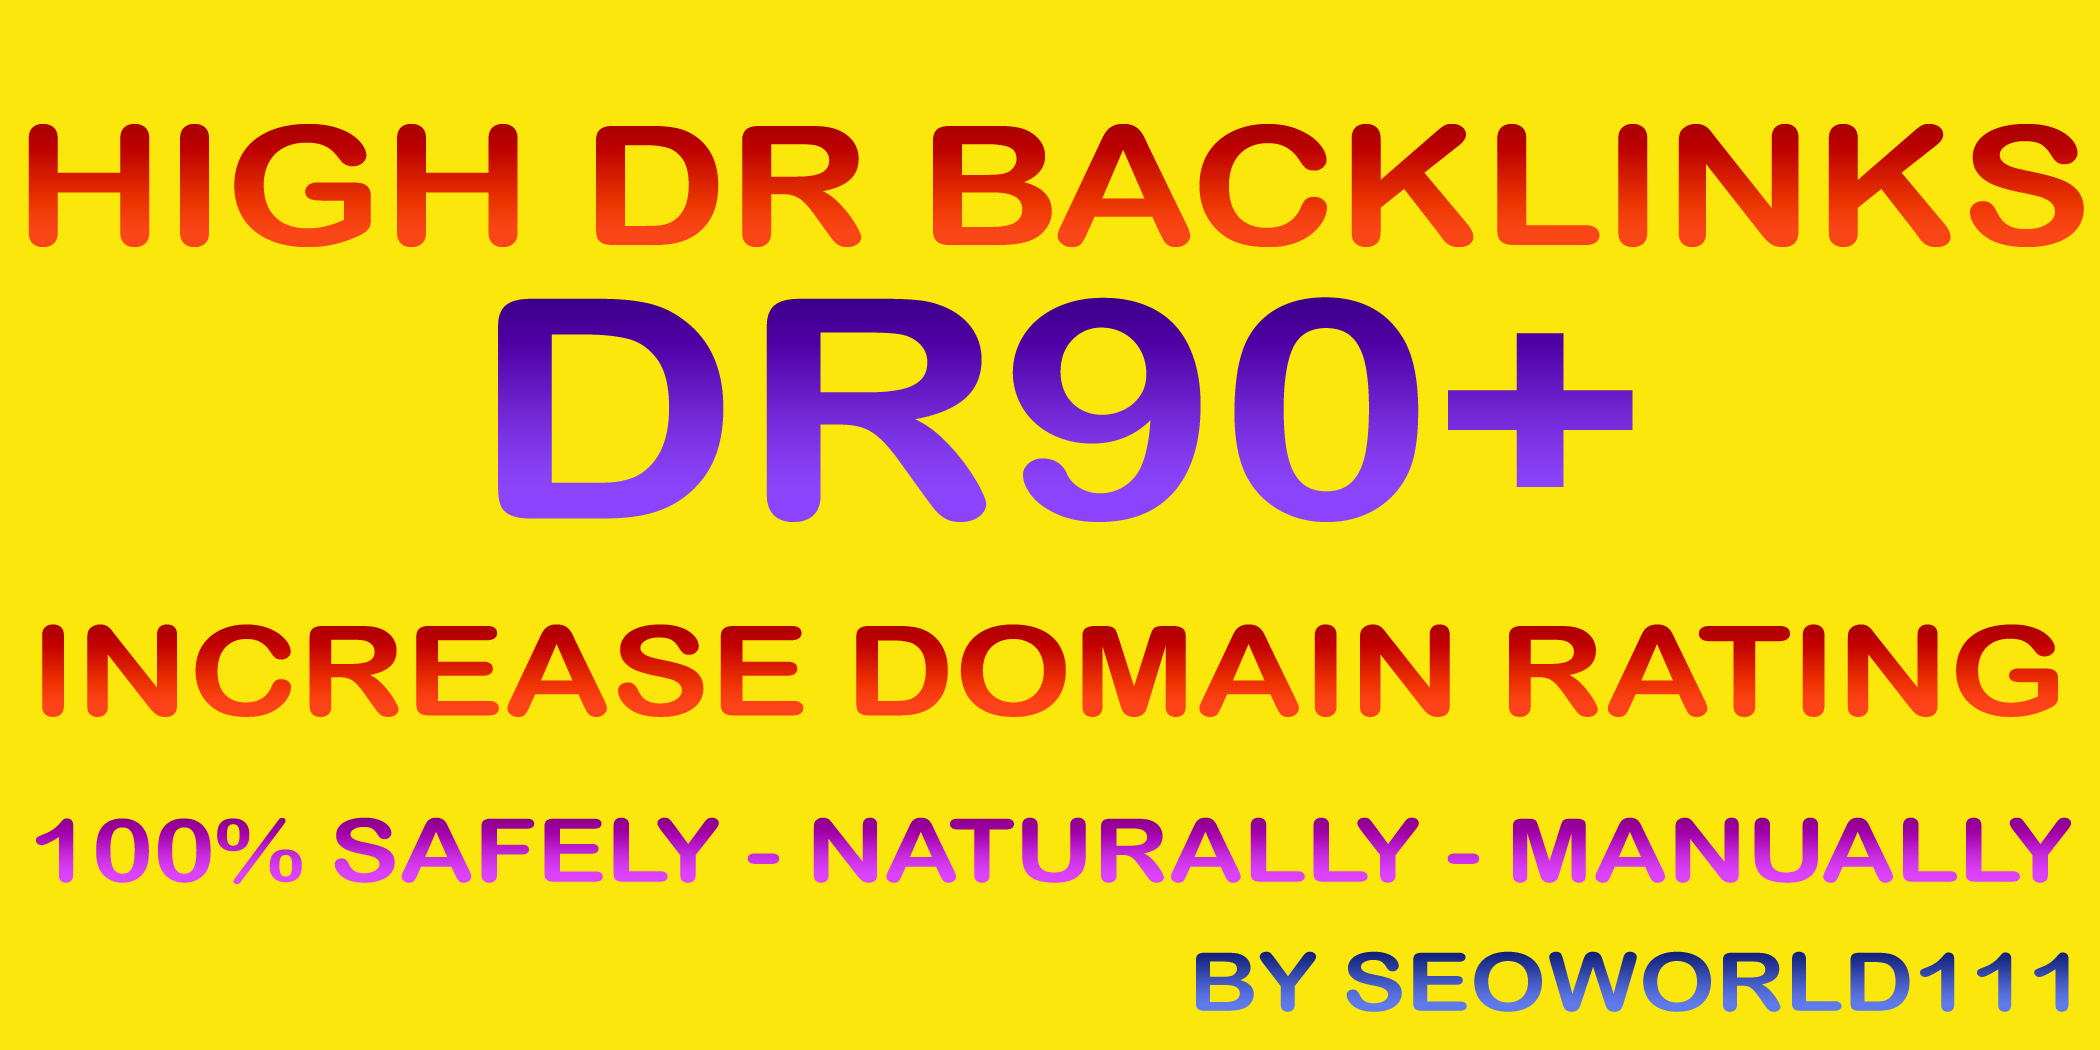 25 DR90+ High DR Backlinks to Increase Domain Rating